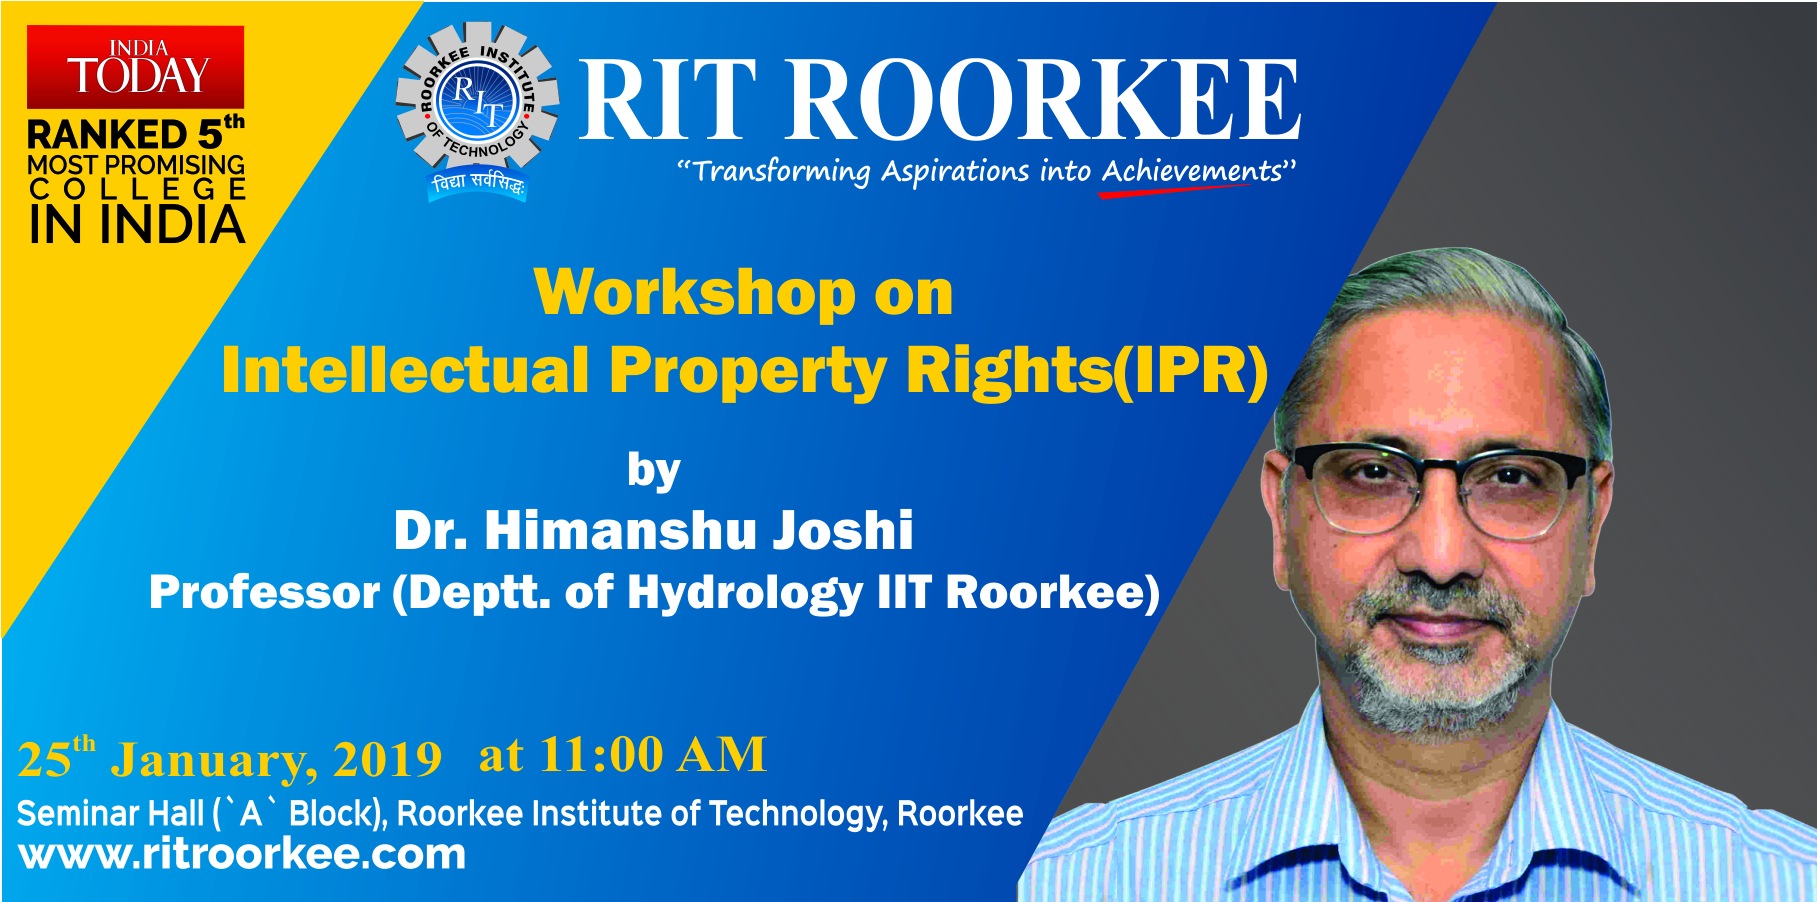 RIT Workshop on Intellectual Property Rights (IPR)